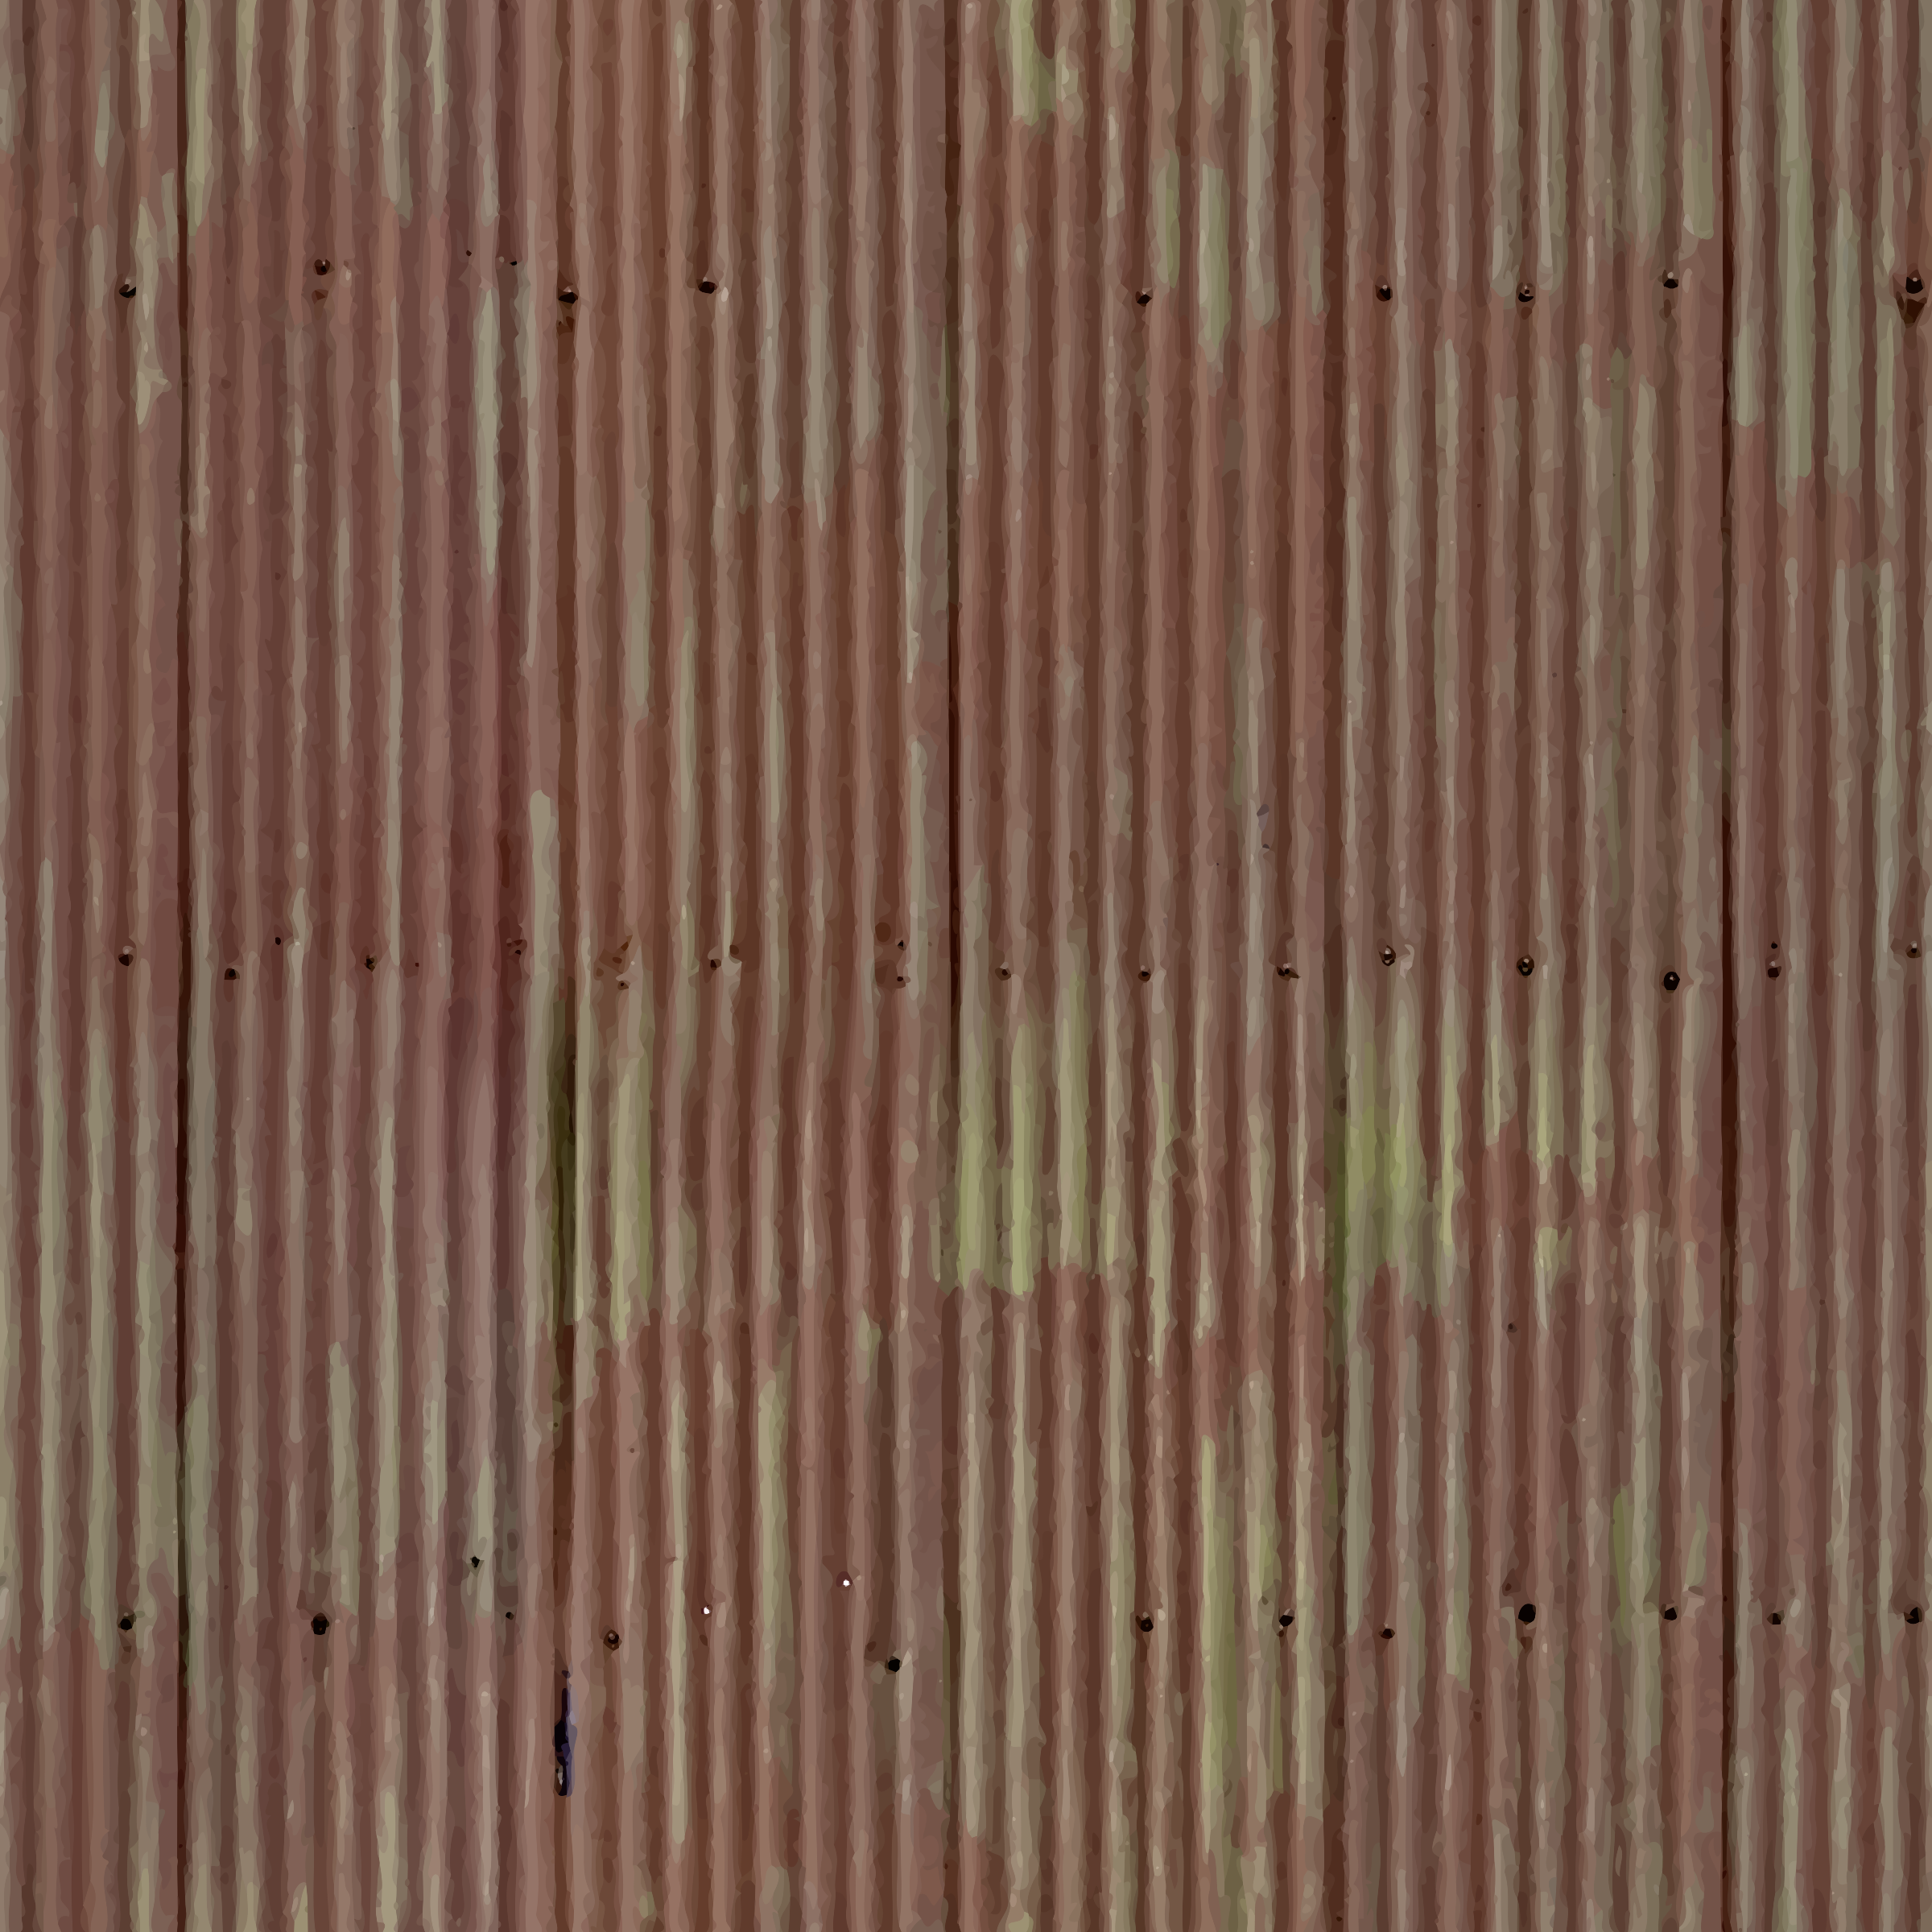 Corrugated metal 12 by Firkin